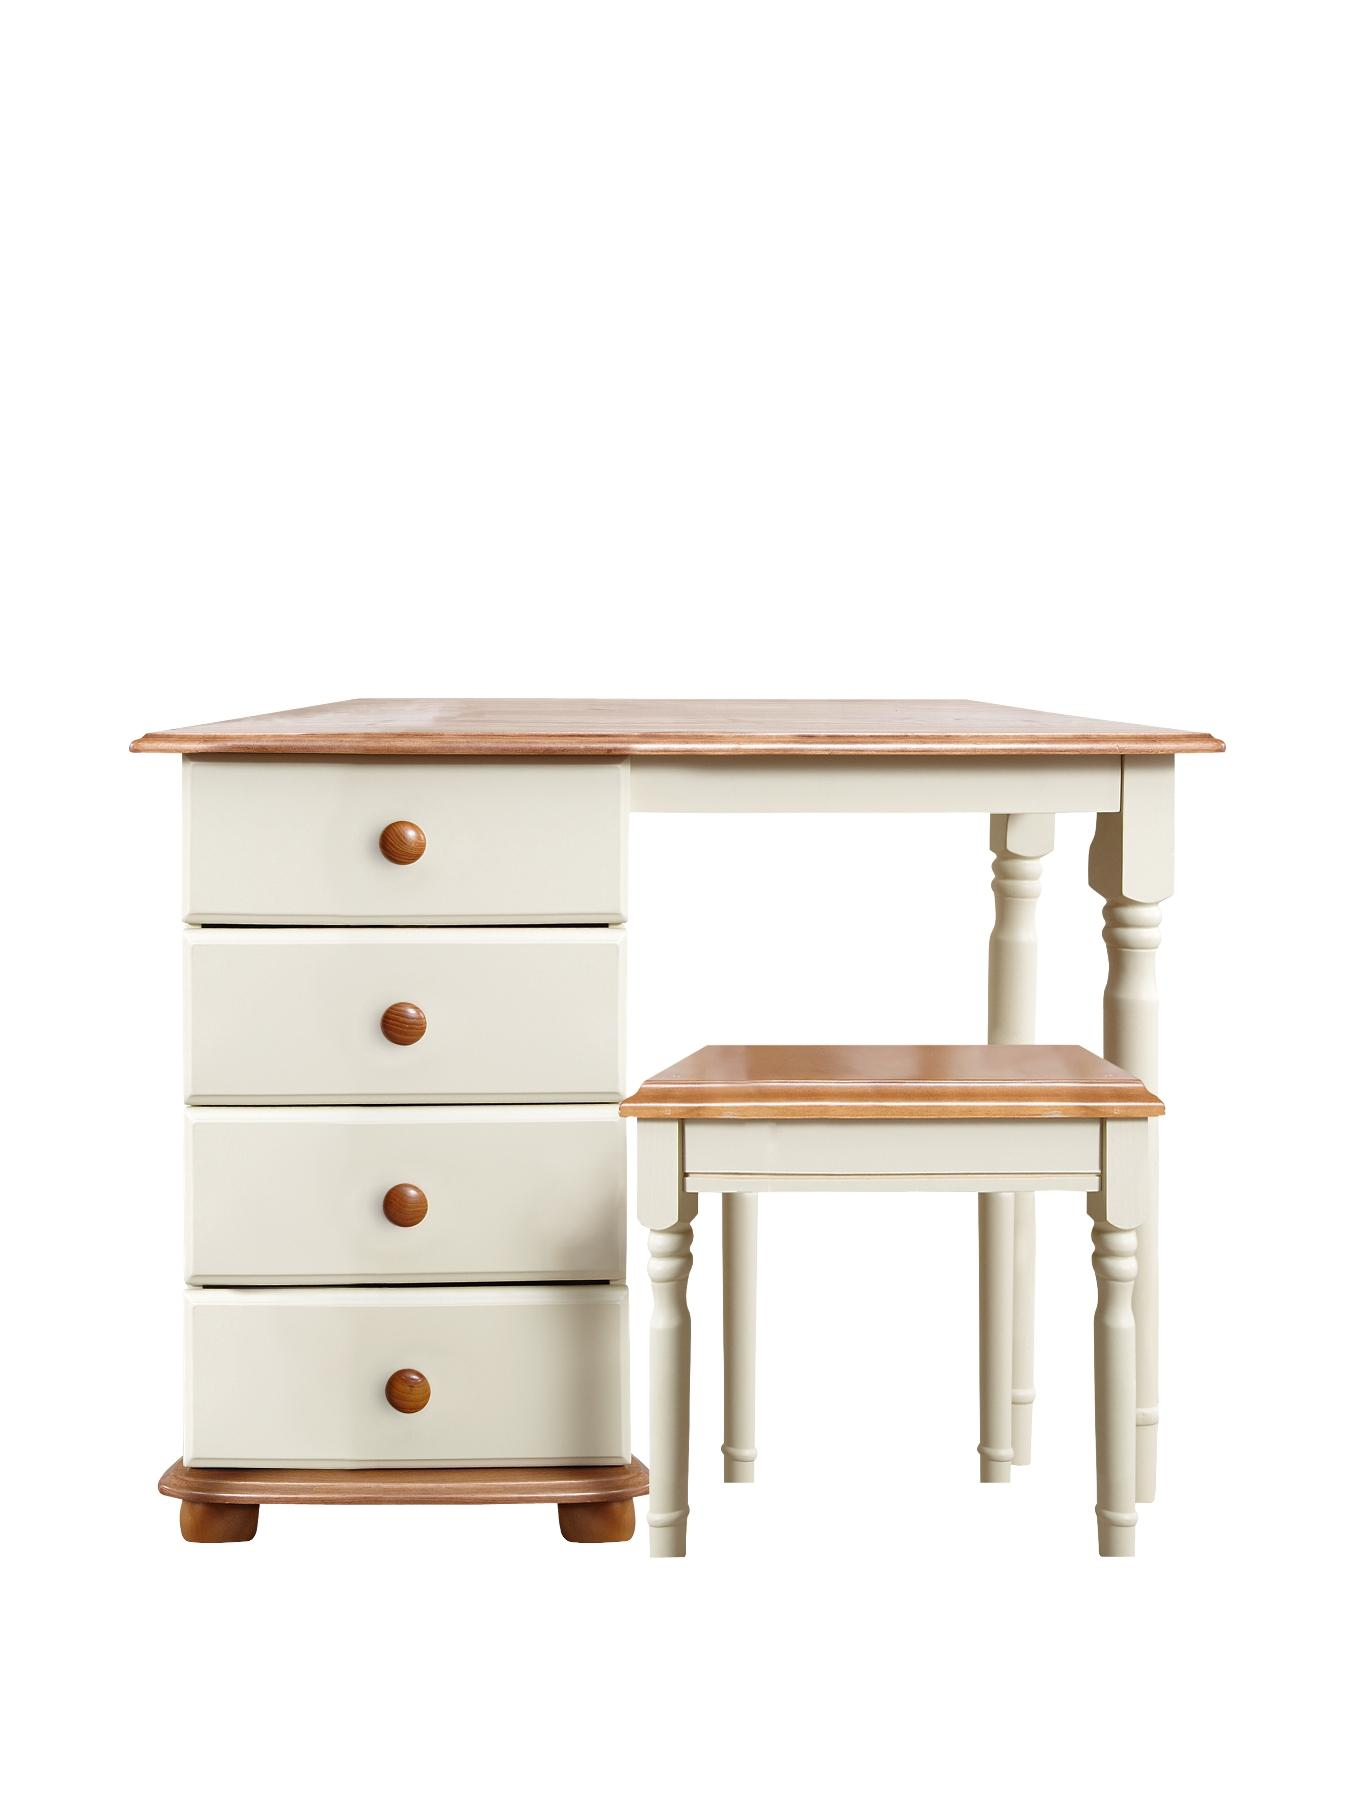 Darlington Dressing Table and Stool Set, Cream